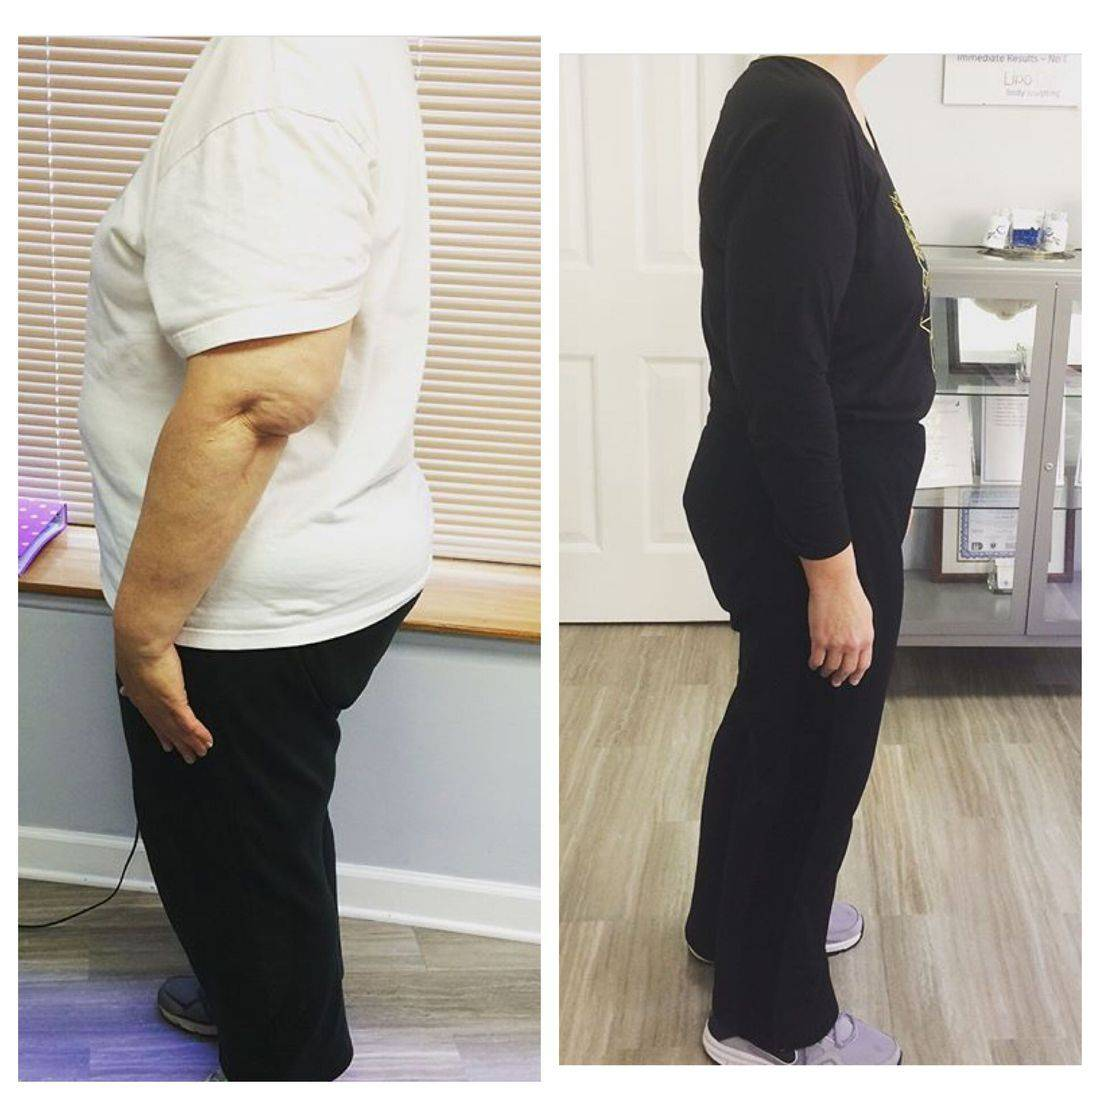 3 Months on Candida Cleanse, down 98 pounds